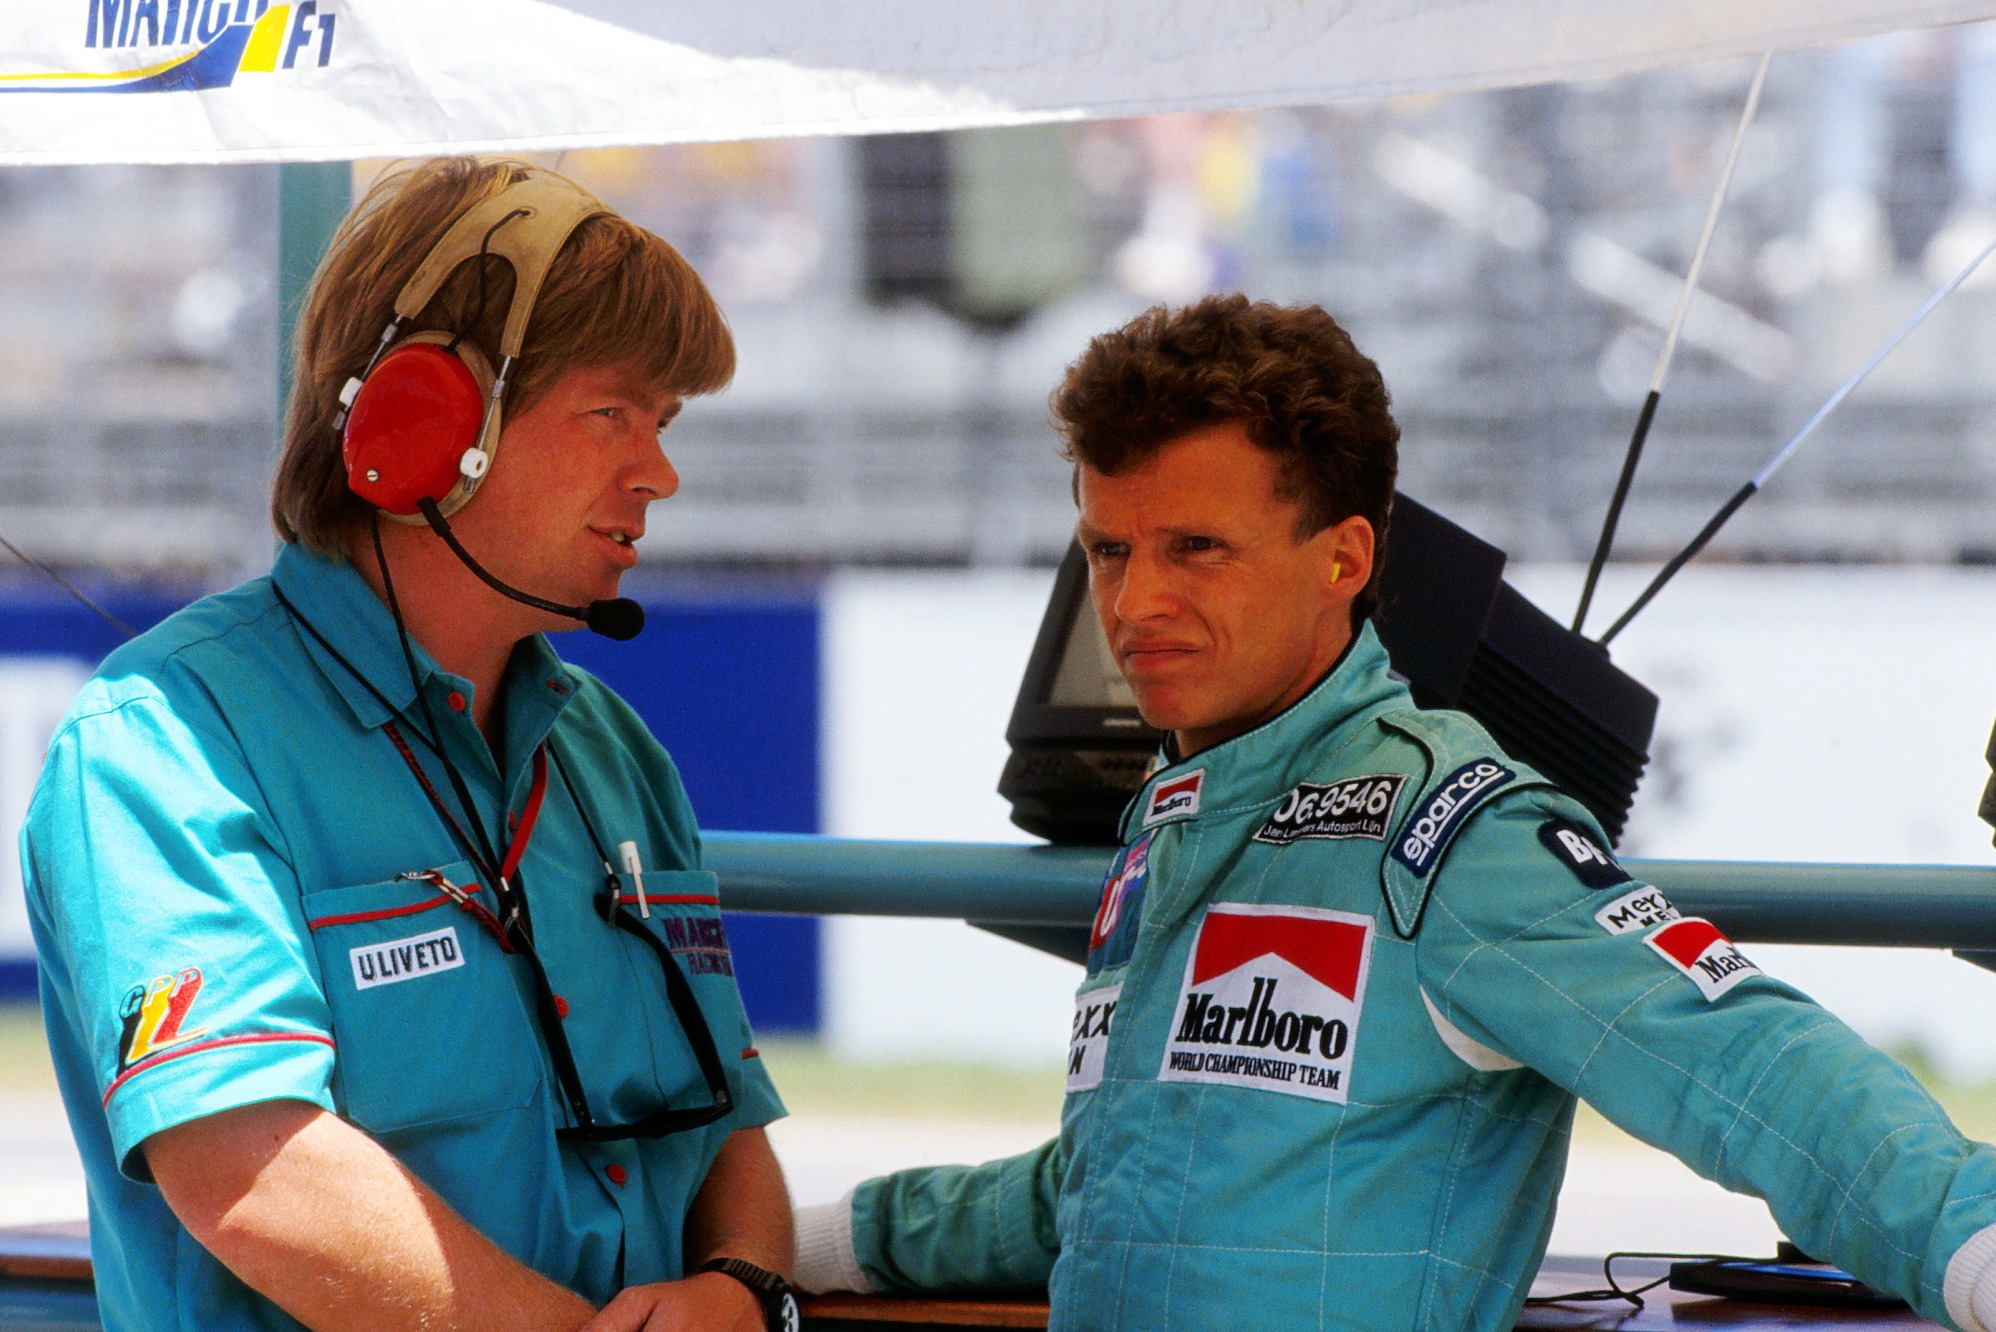 Lammers took a gamble to rejoin the F1 fray, but March wasn't a good prospect